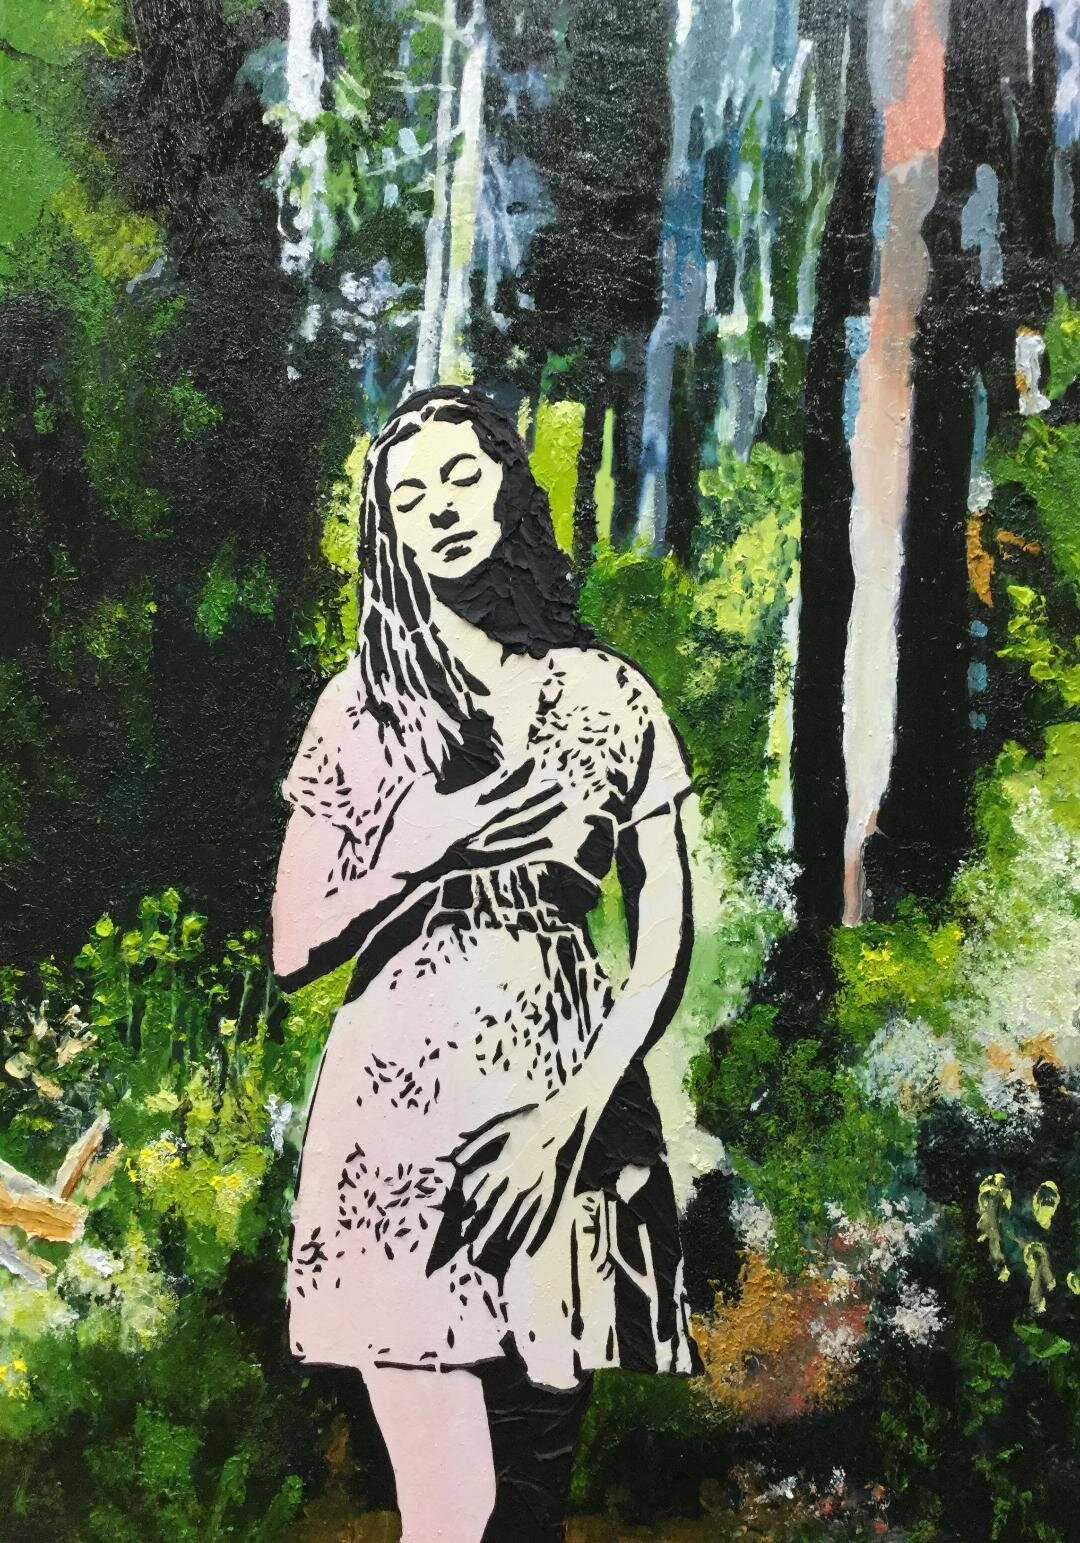 Portrait of the female in the center of the work with the trees, grass green background